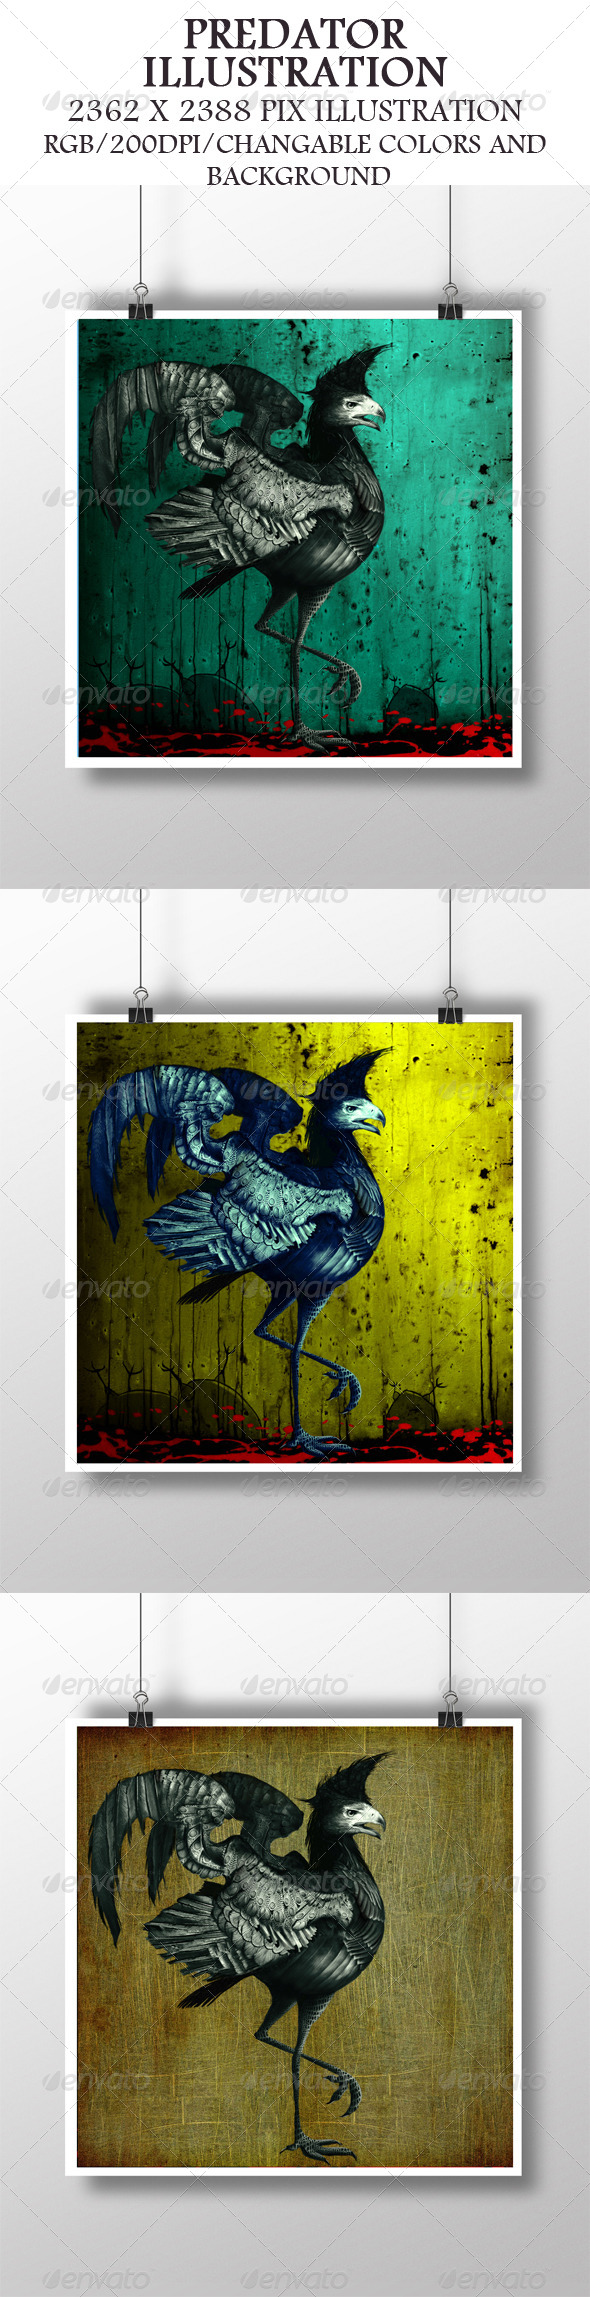 GraphicRiver Predator Illustration 6979351